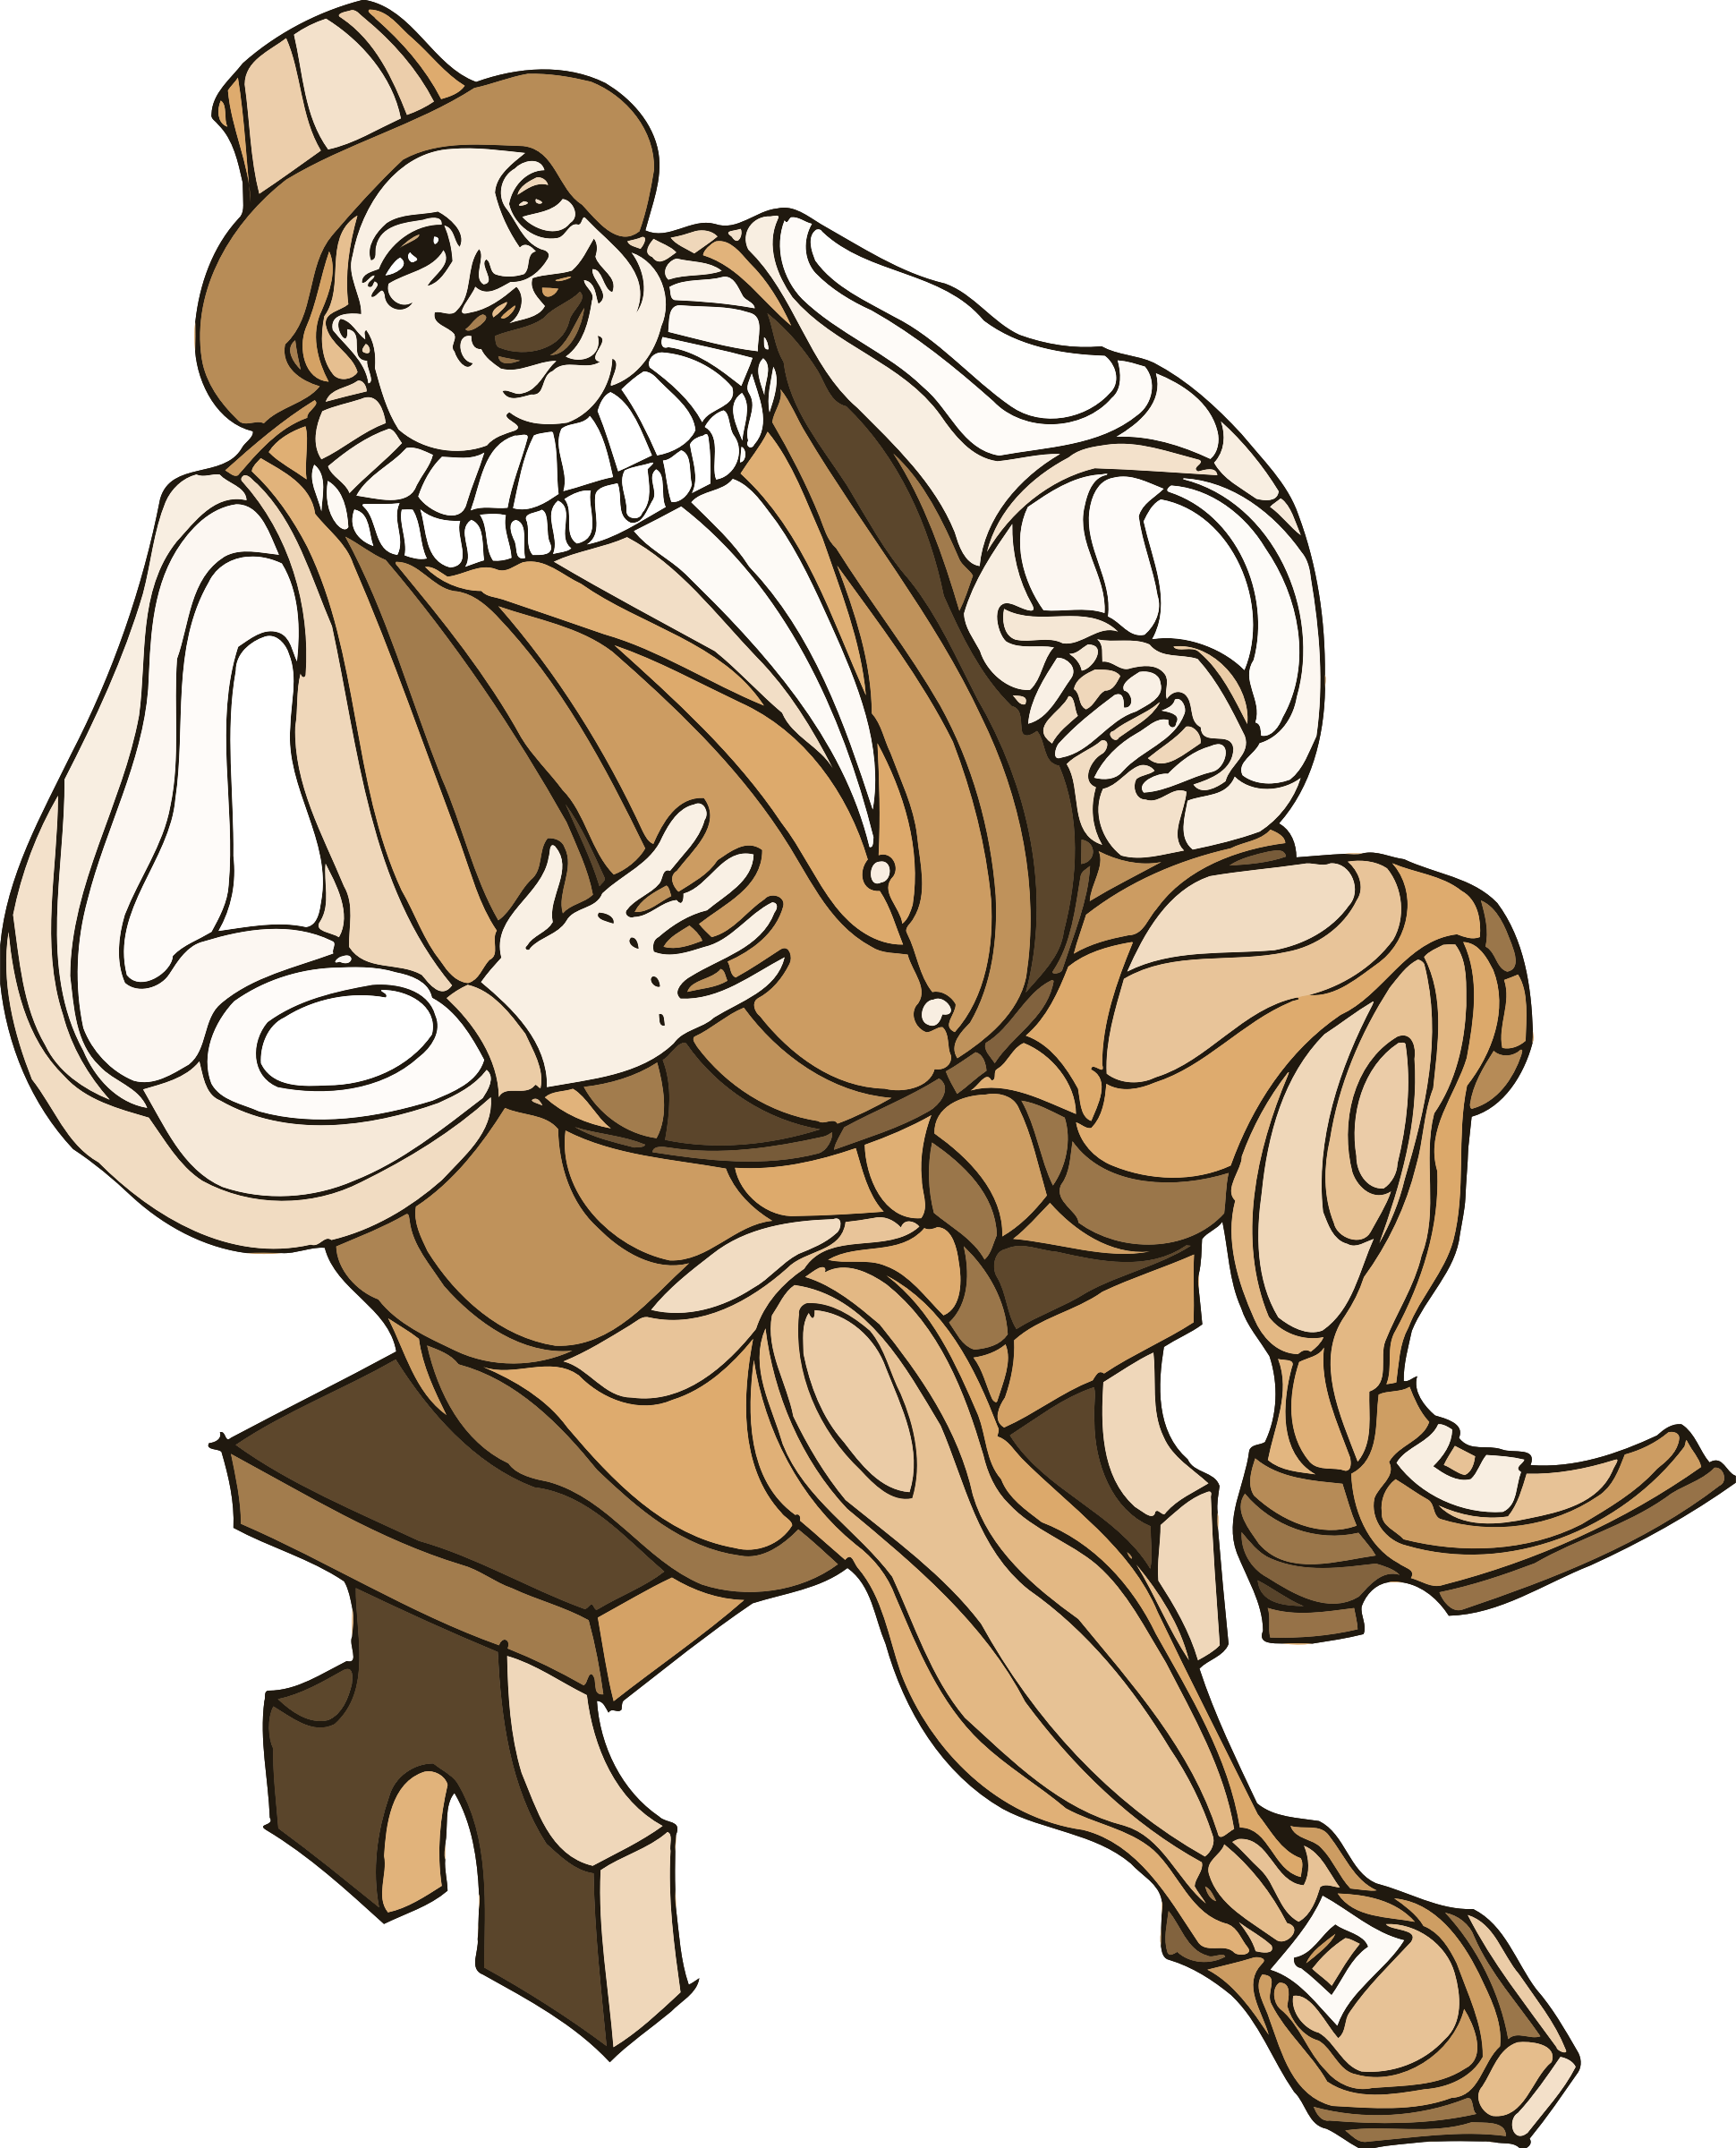 Shakespeare characters - Sir Toby by Firkin